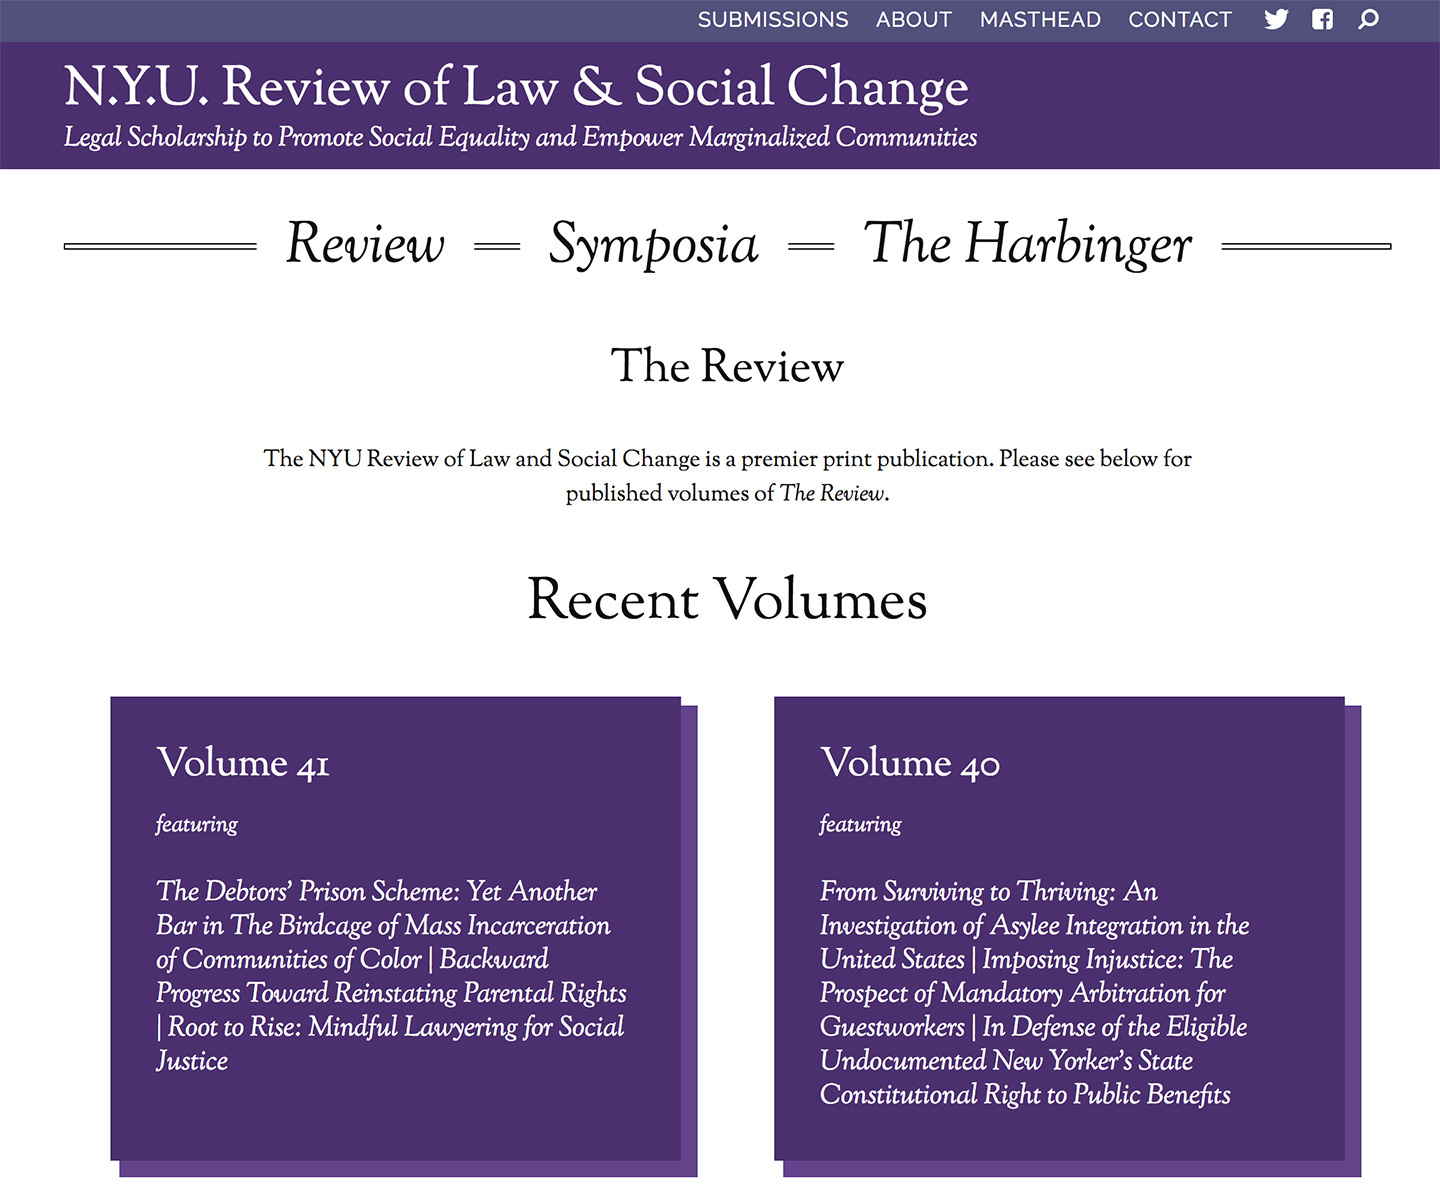 NYU: Review of Law and Social Change: Journal Overview